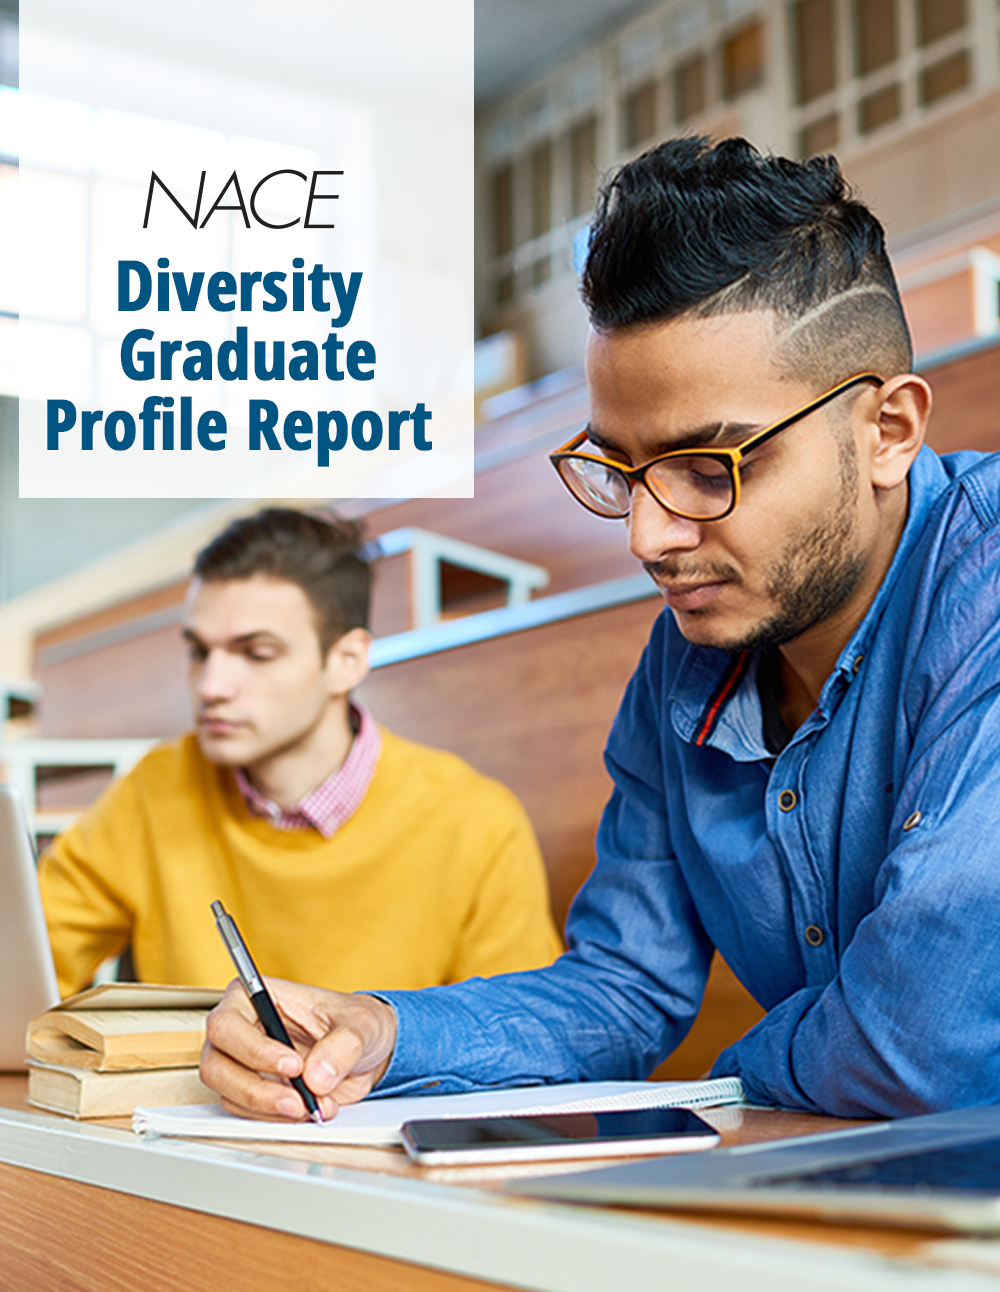 NACE Diversity Graduate Profile Report: Business